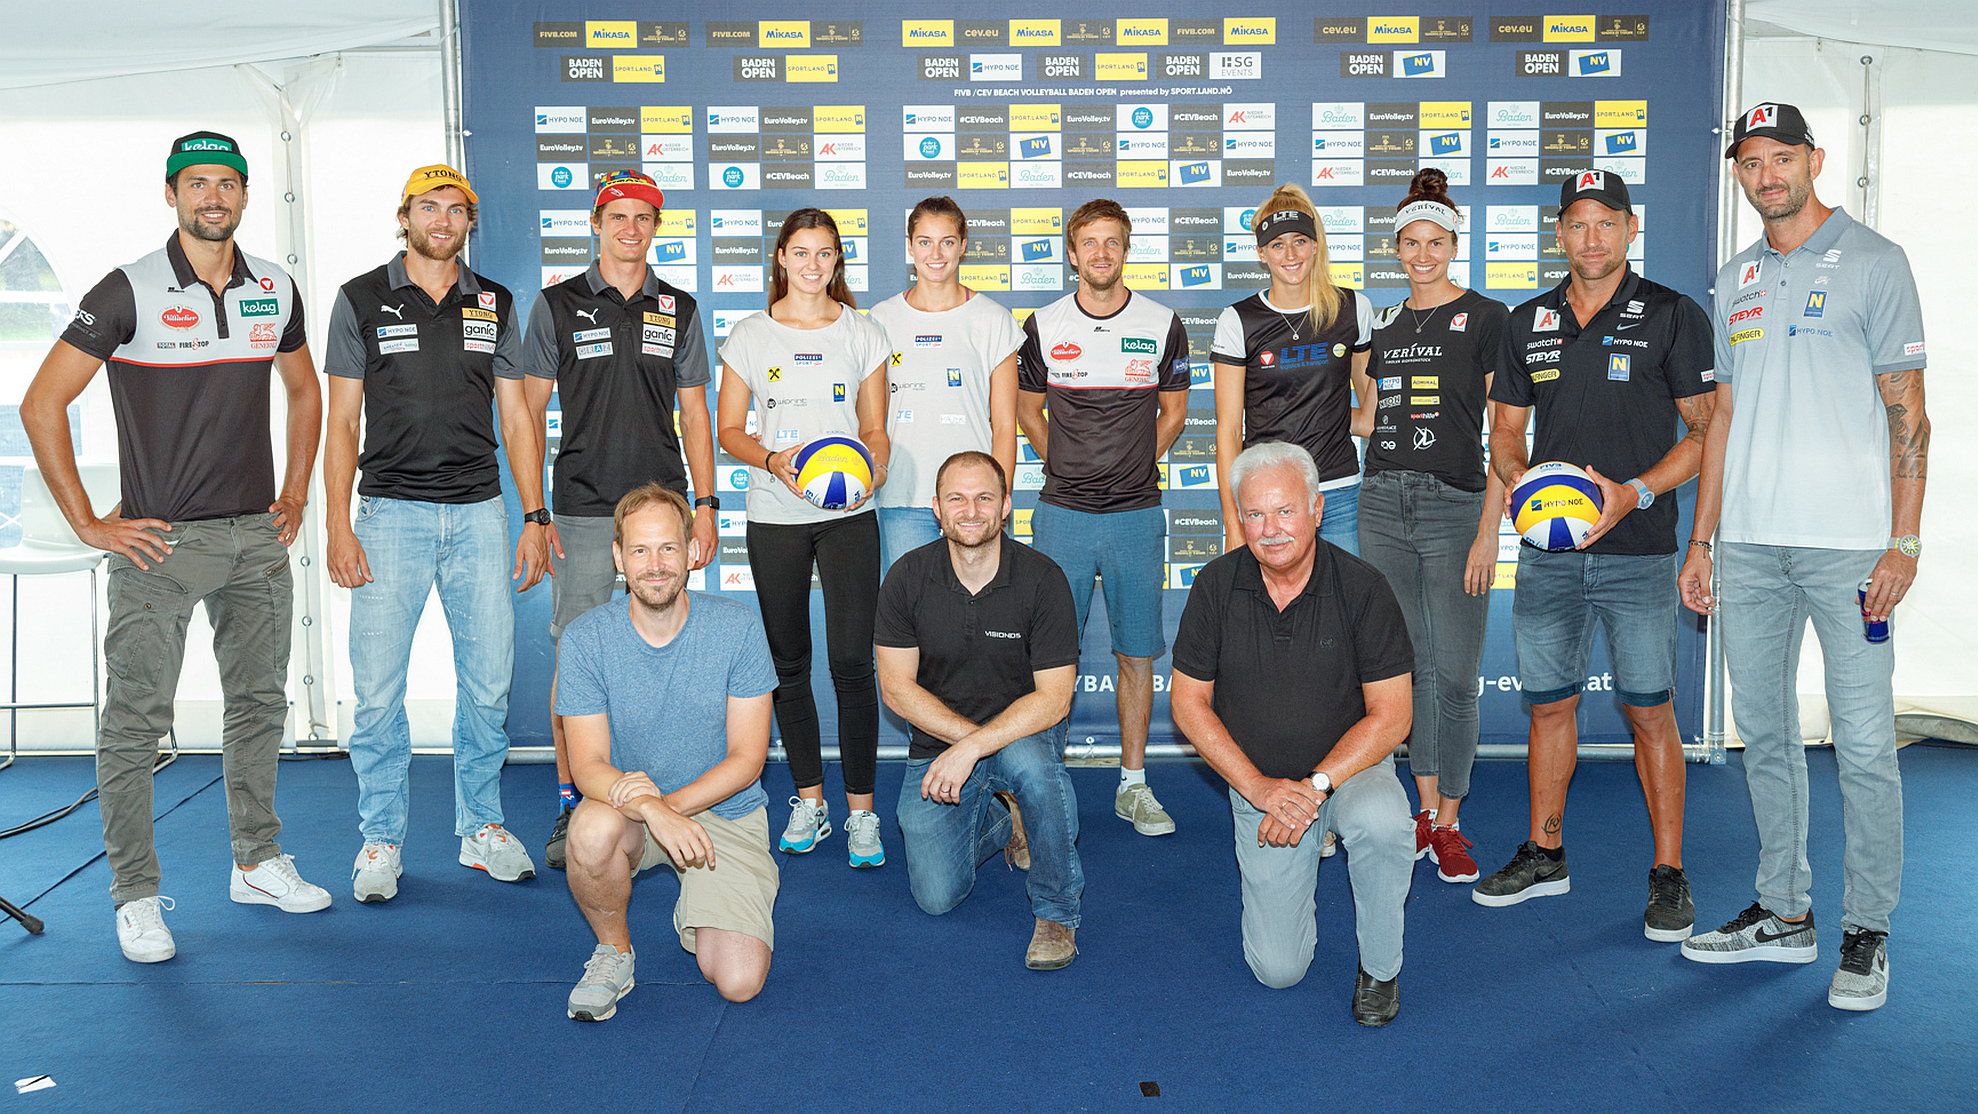 FOTO © Beachvolleyball Baden 2020/Vision05